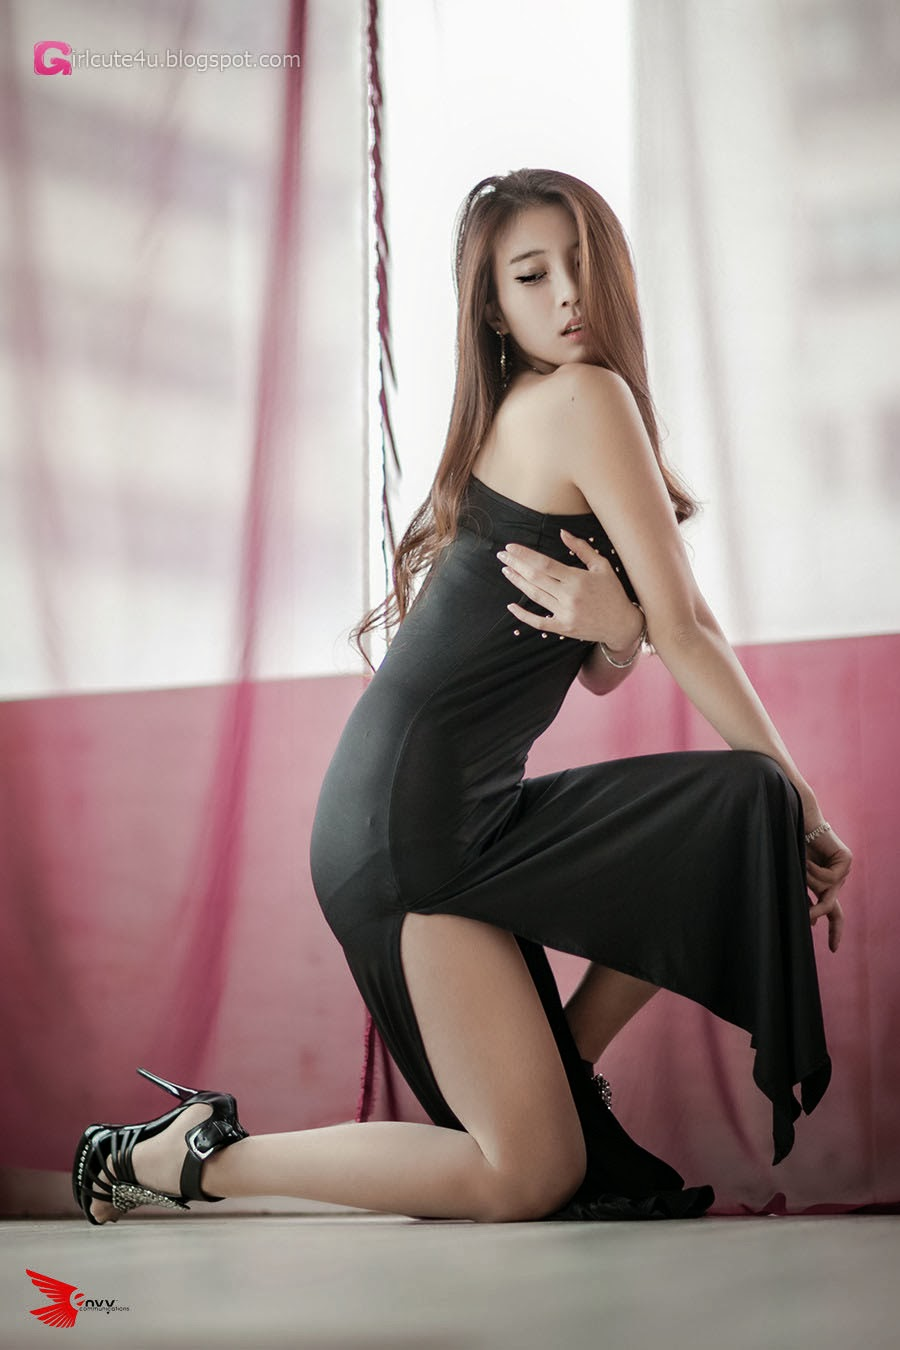 4 Cha Jung Ah - very cute asian girl-girlcute4u.blogspot.com